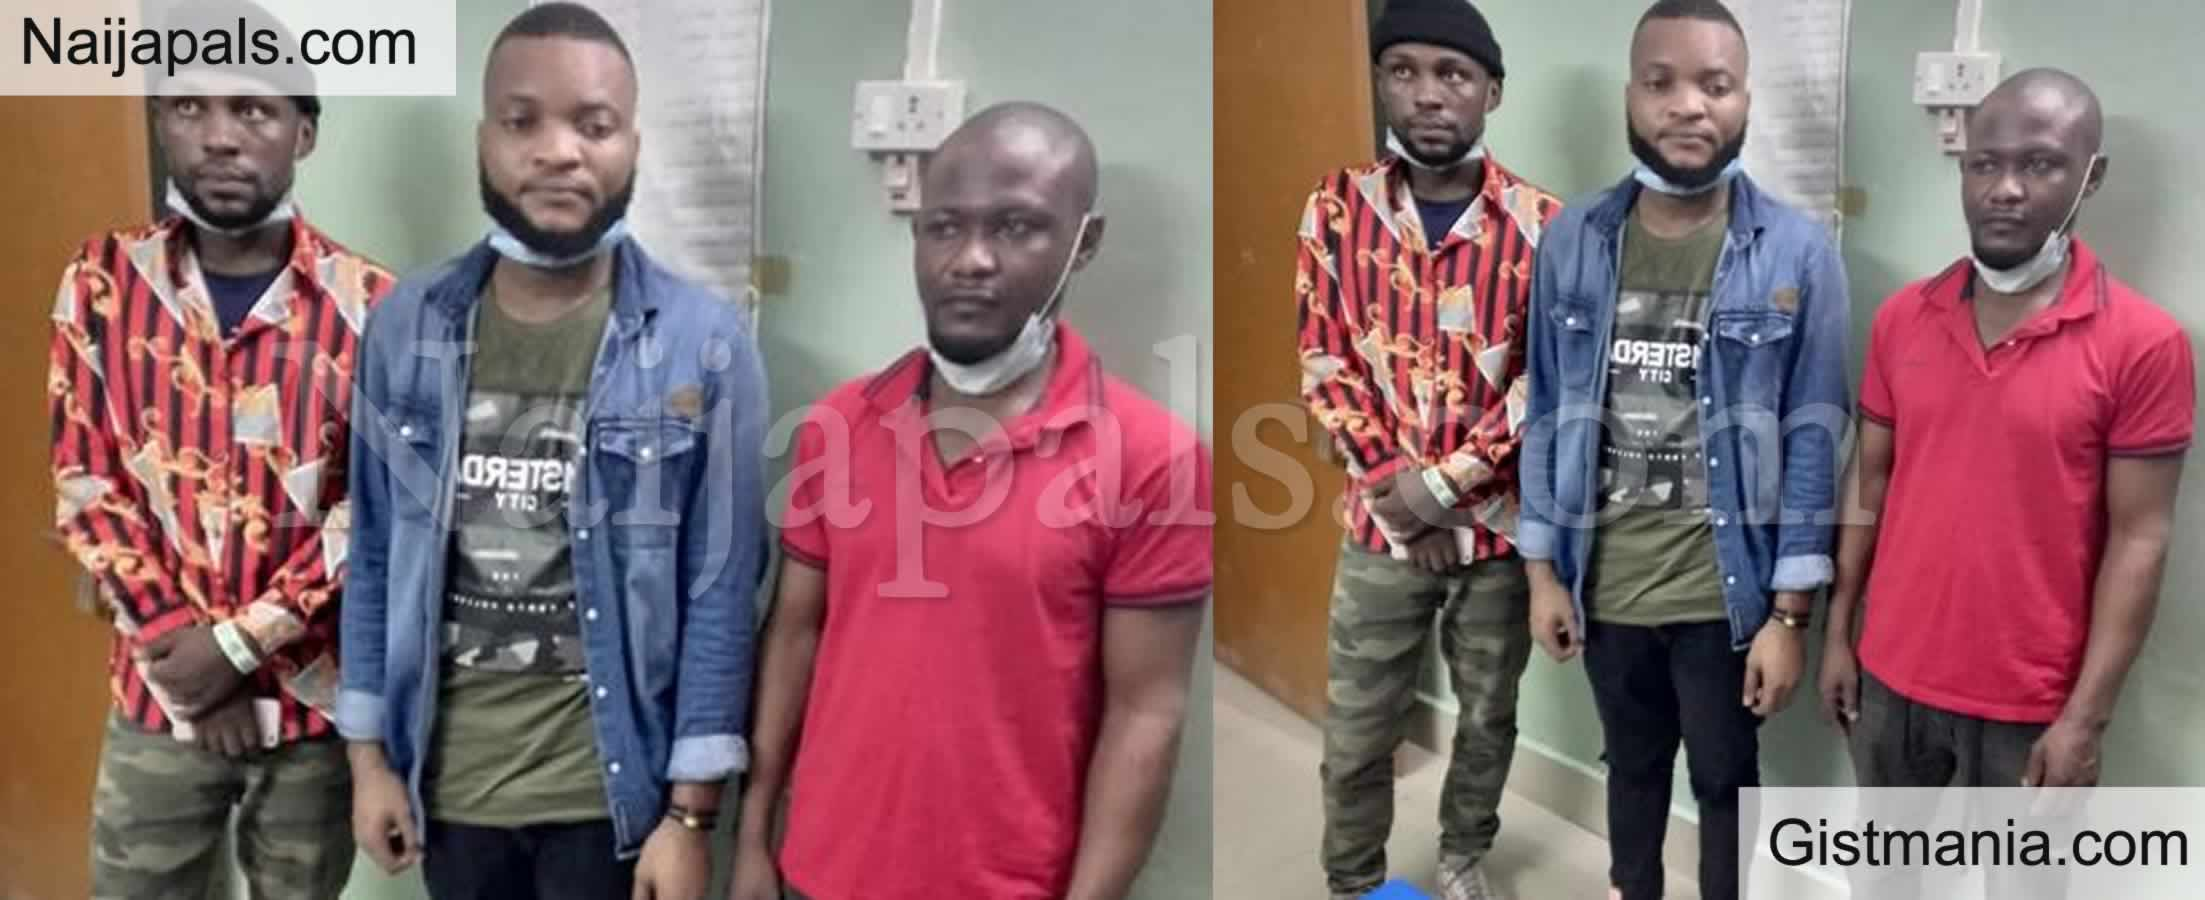 <img alt='.' class='lazyload' data-src='https://img.gistmania.com/emot/news.gif' /> PHOTOS: <b>3 Nigerians Nabbed After They Smuggled Themselves Into India With No Documents</b>